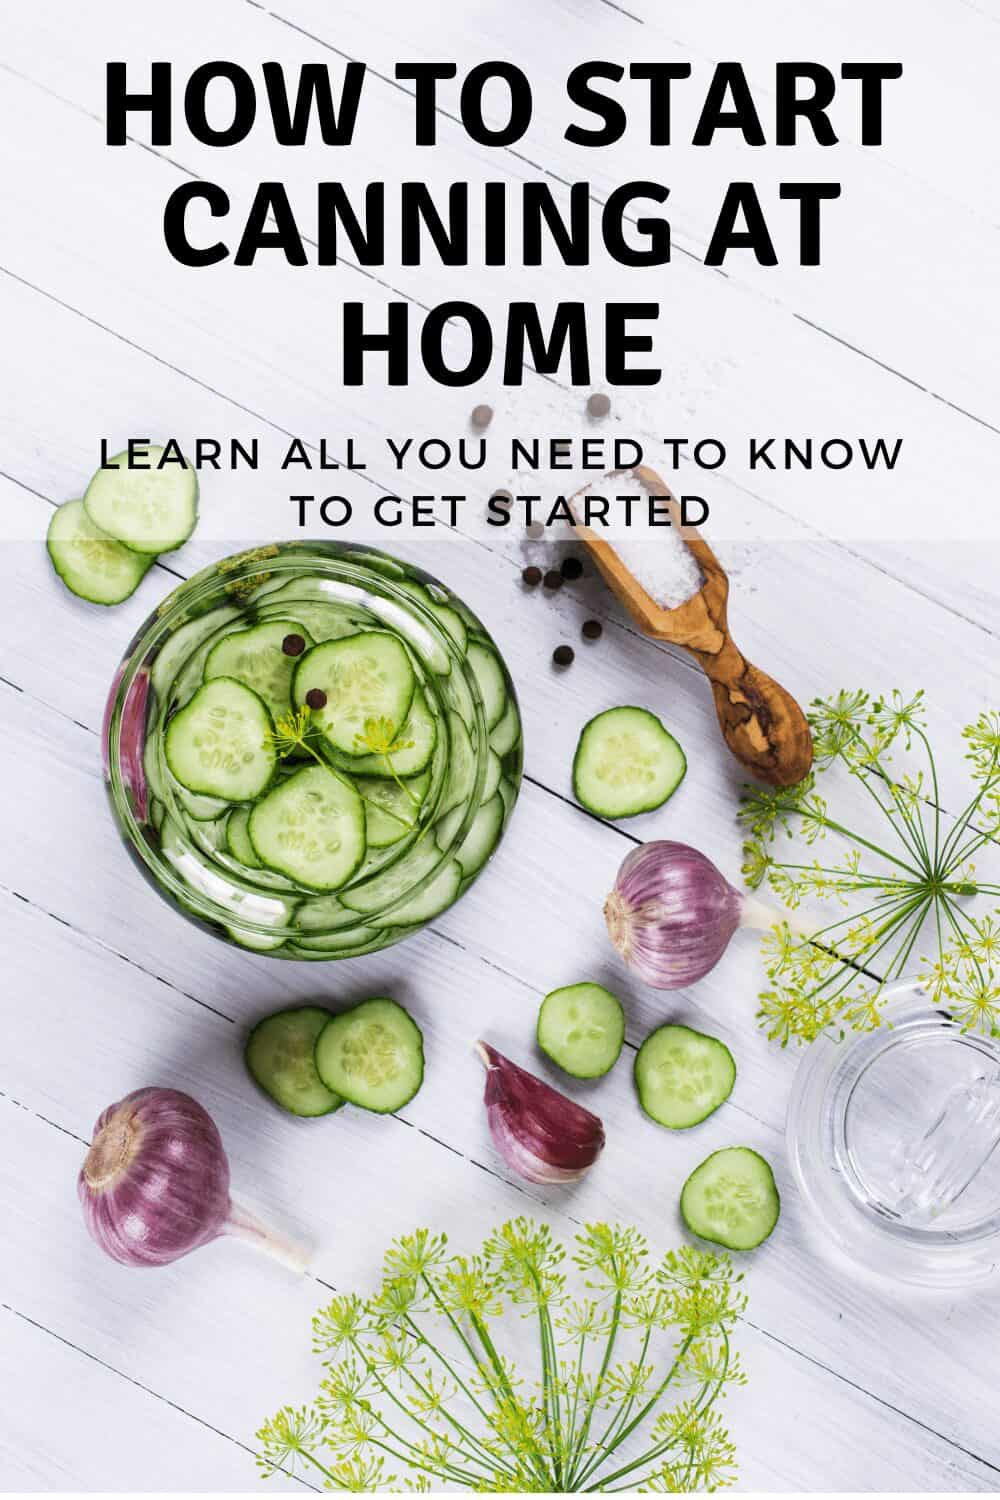 how to pressure guide can with pickles, spices and jars.